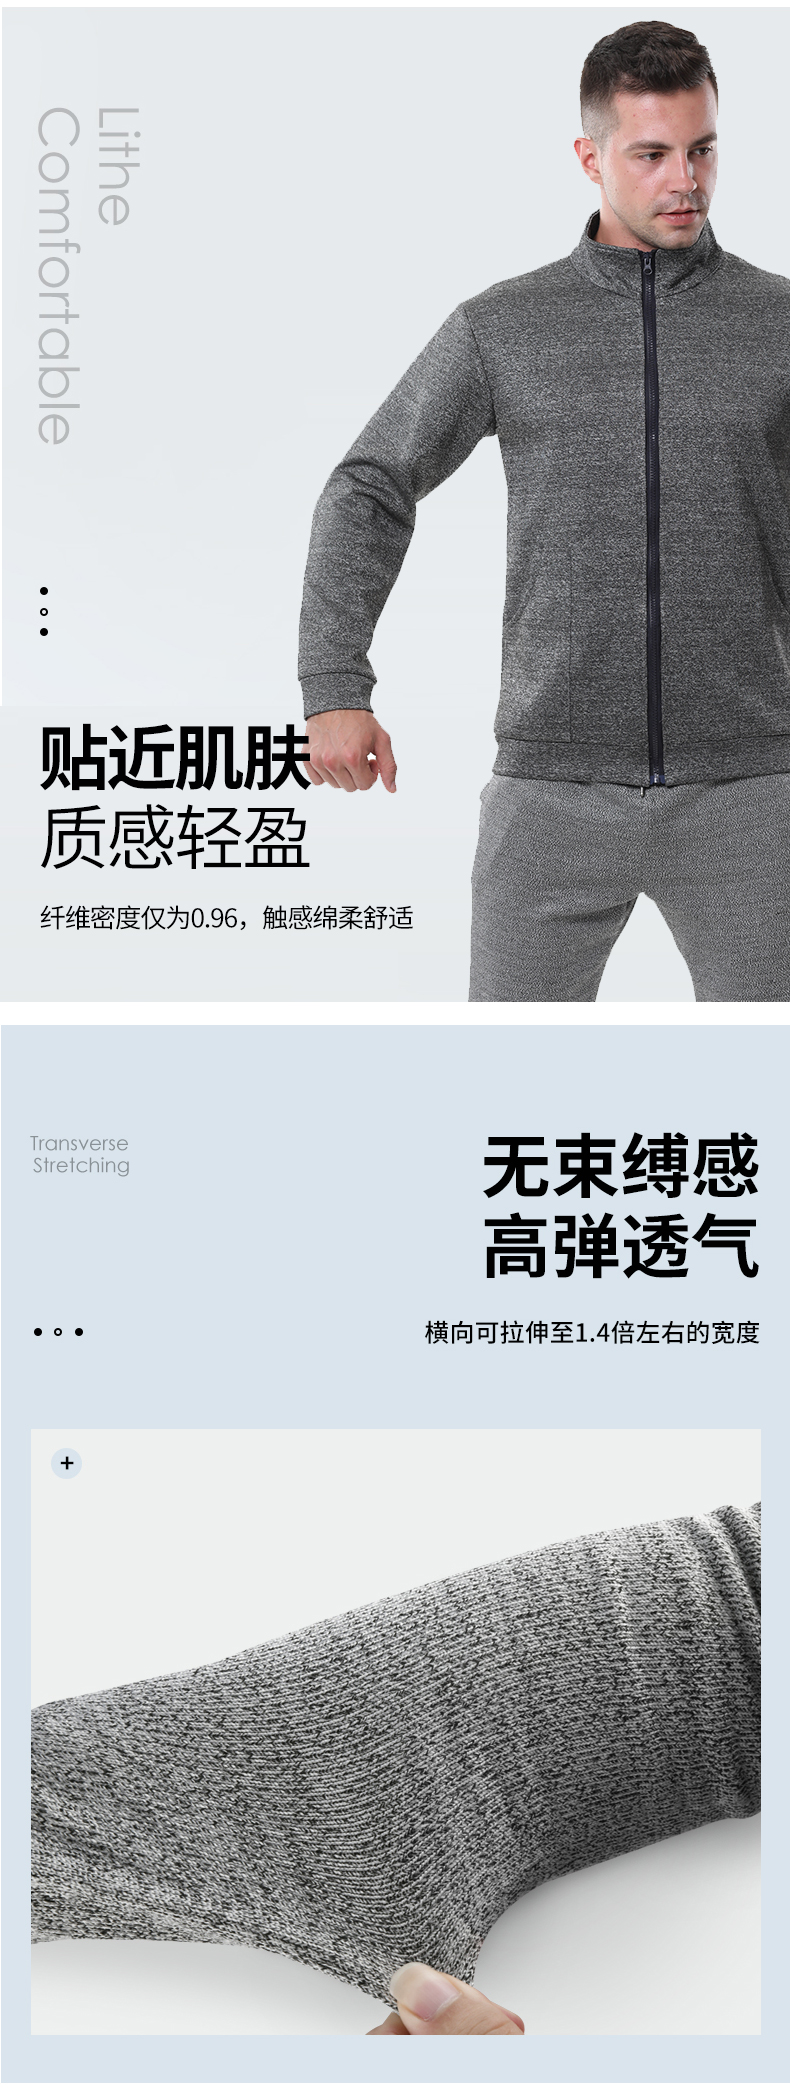 Trang phục bảo hộ Cut proof clothing, body armor, high and low collar, stab proof, cut proof, invisi